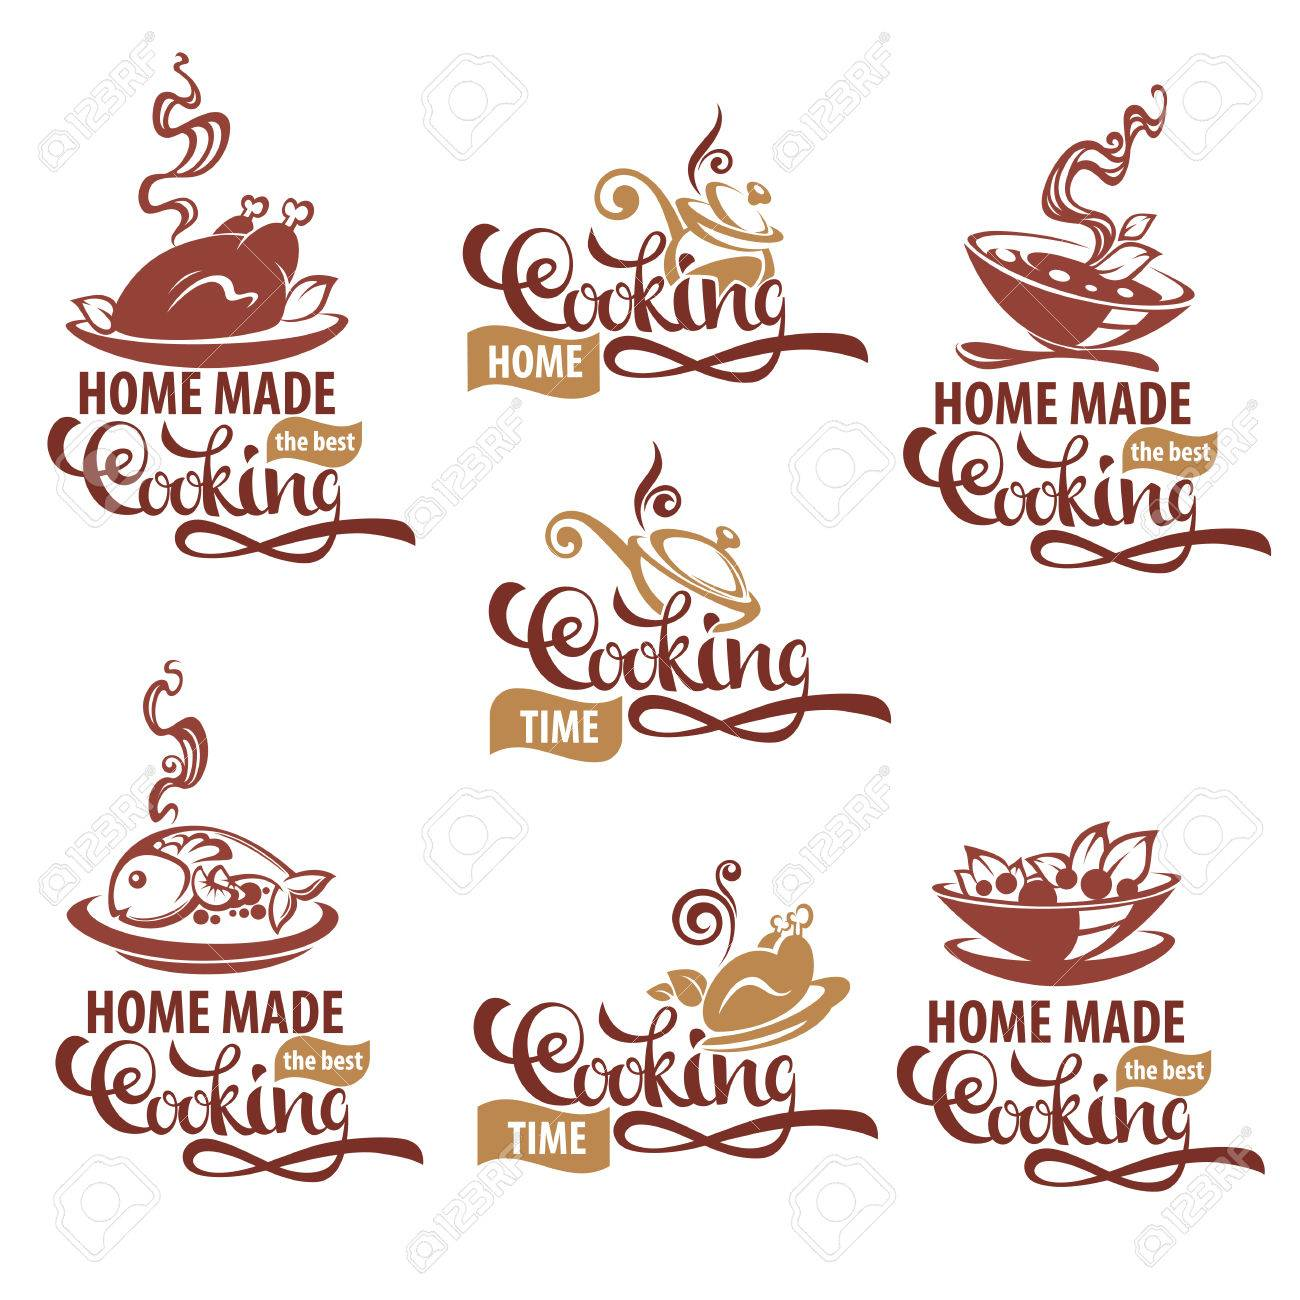 Home Made Cooking, Logo Template Collection, Soup, Salad, Fish ...